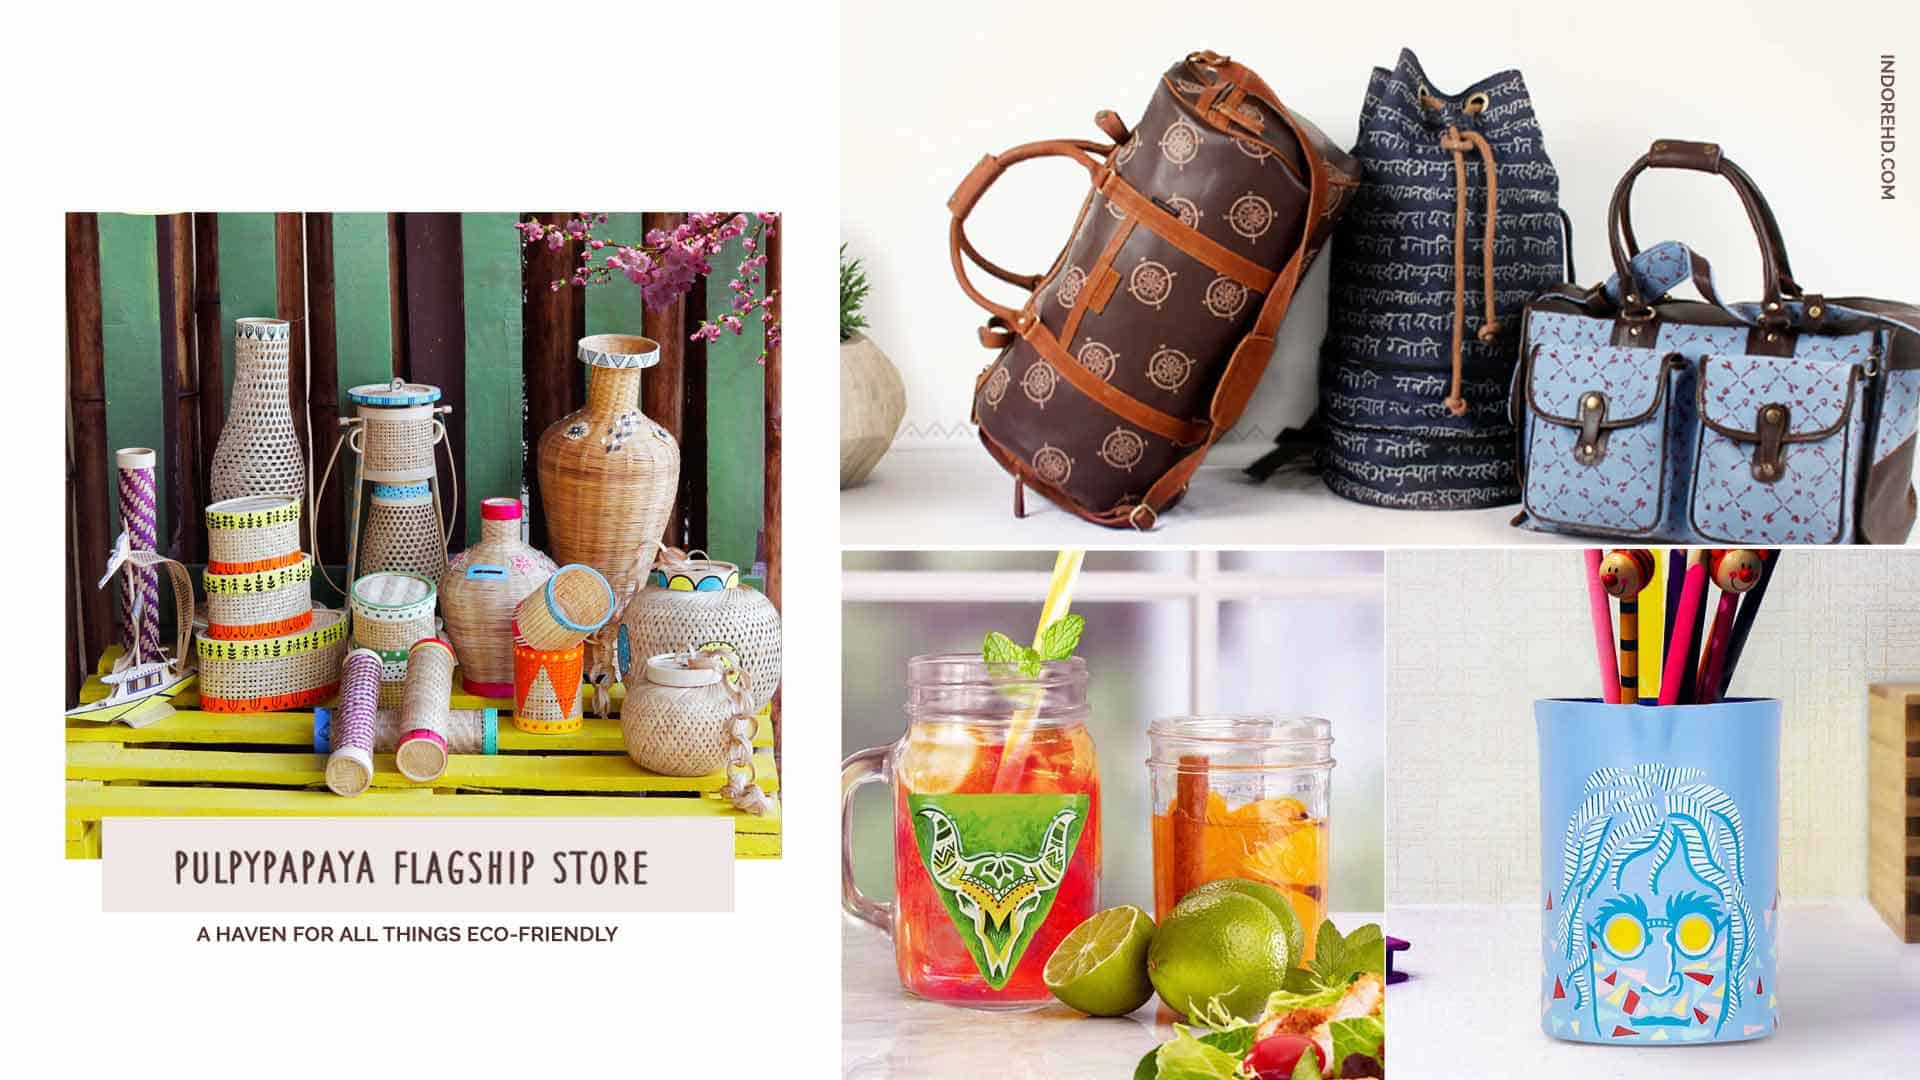 Pulpypapaya-A-Haven-for-all-things-eco-friendly-featured-IndoreHD